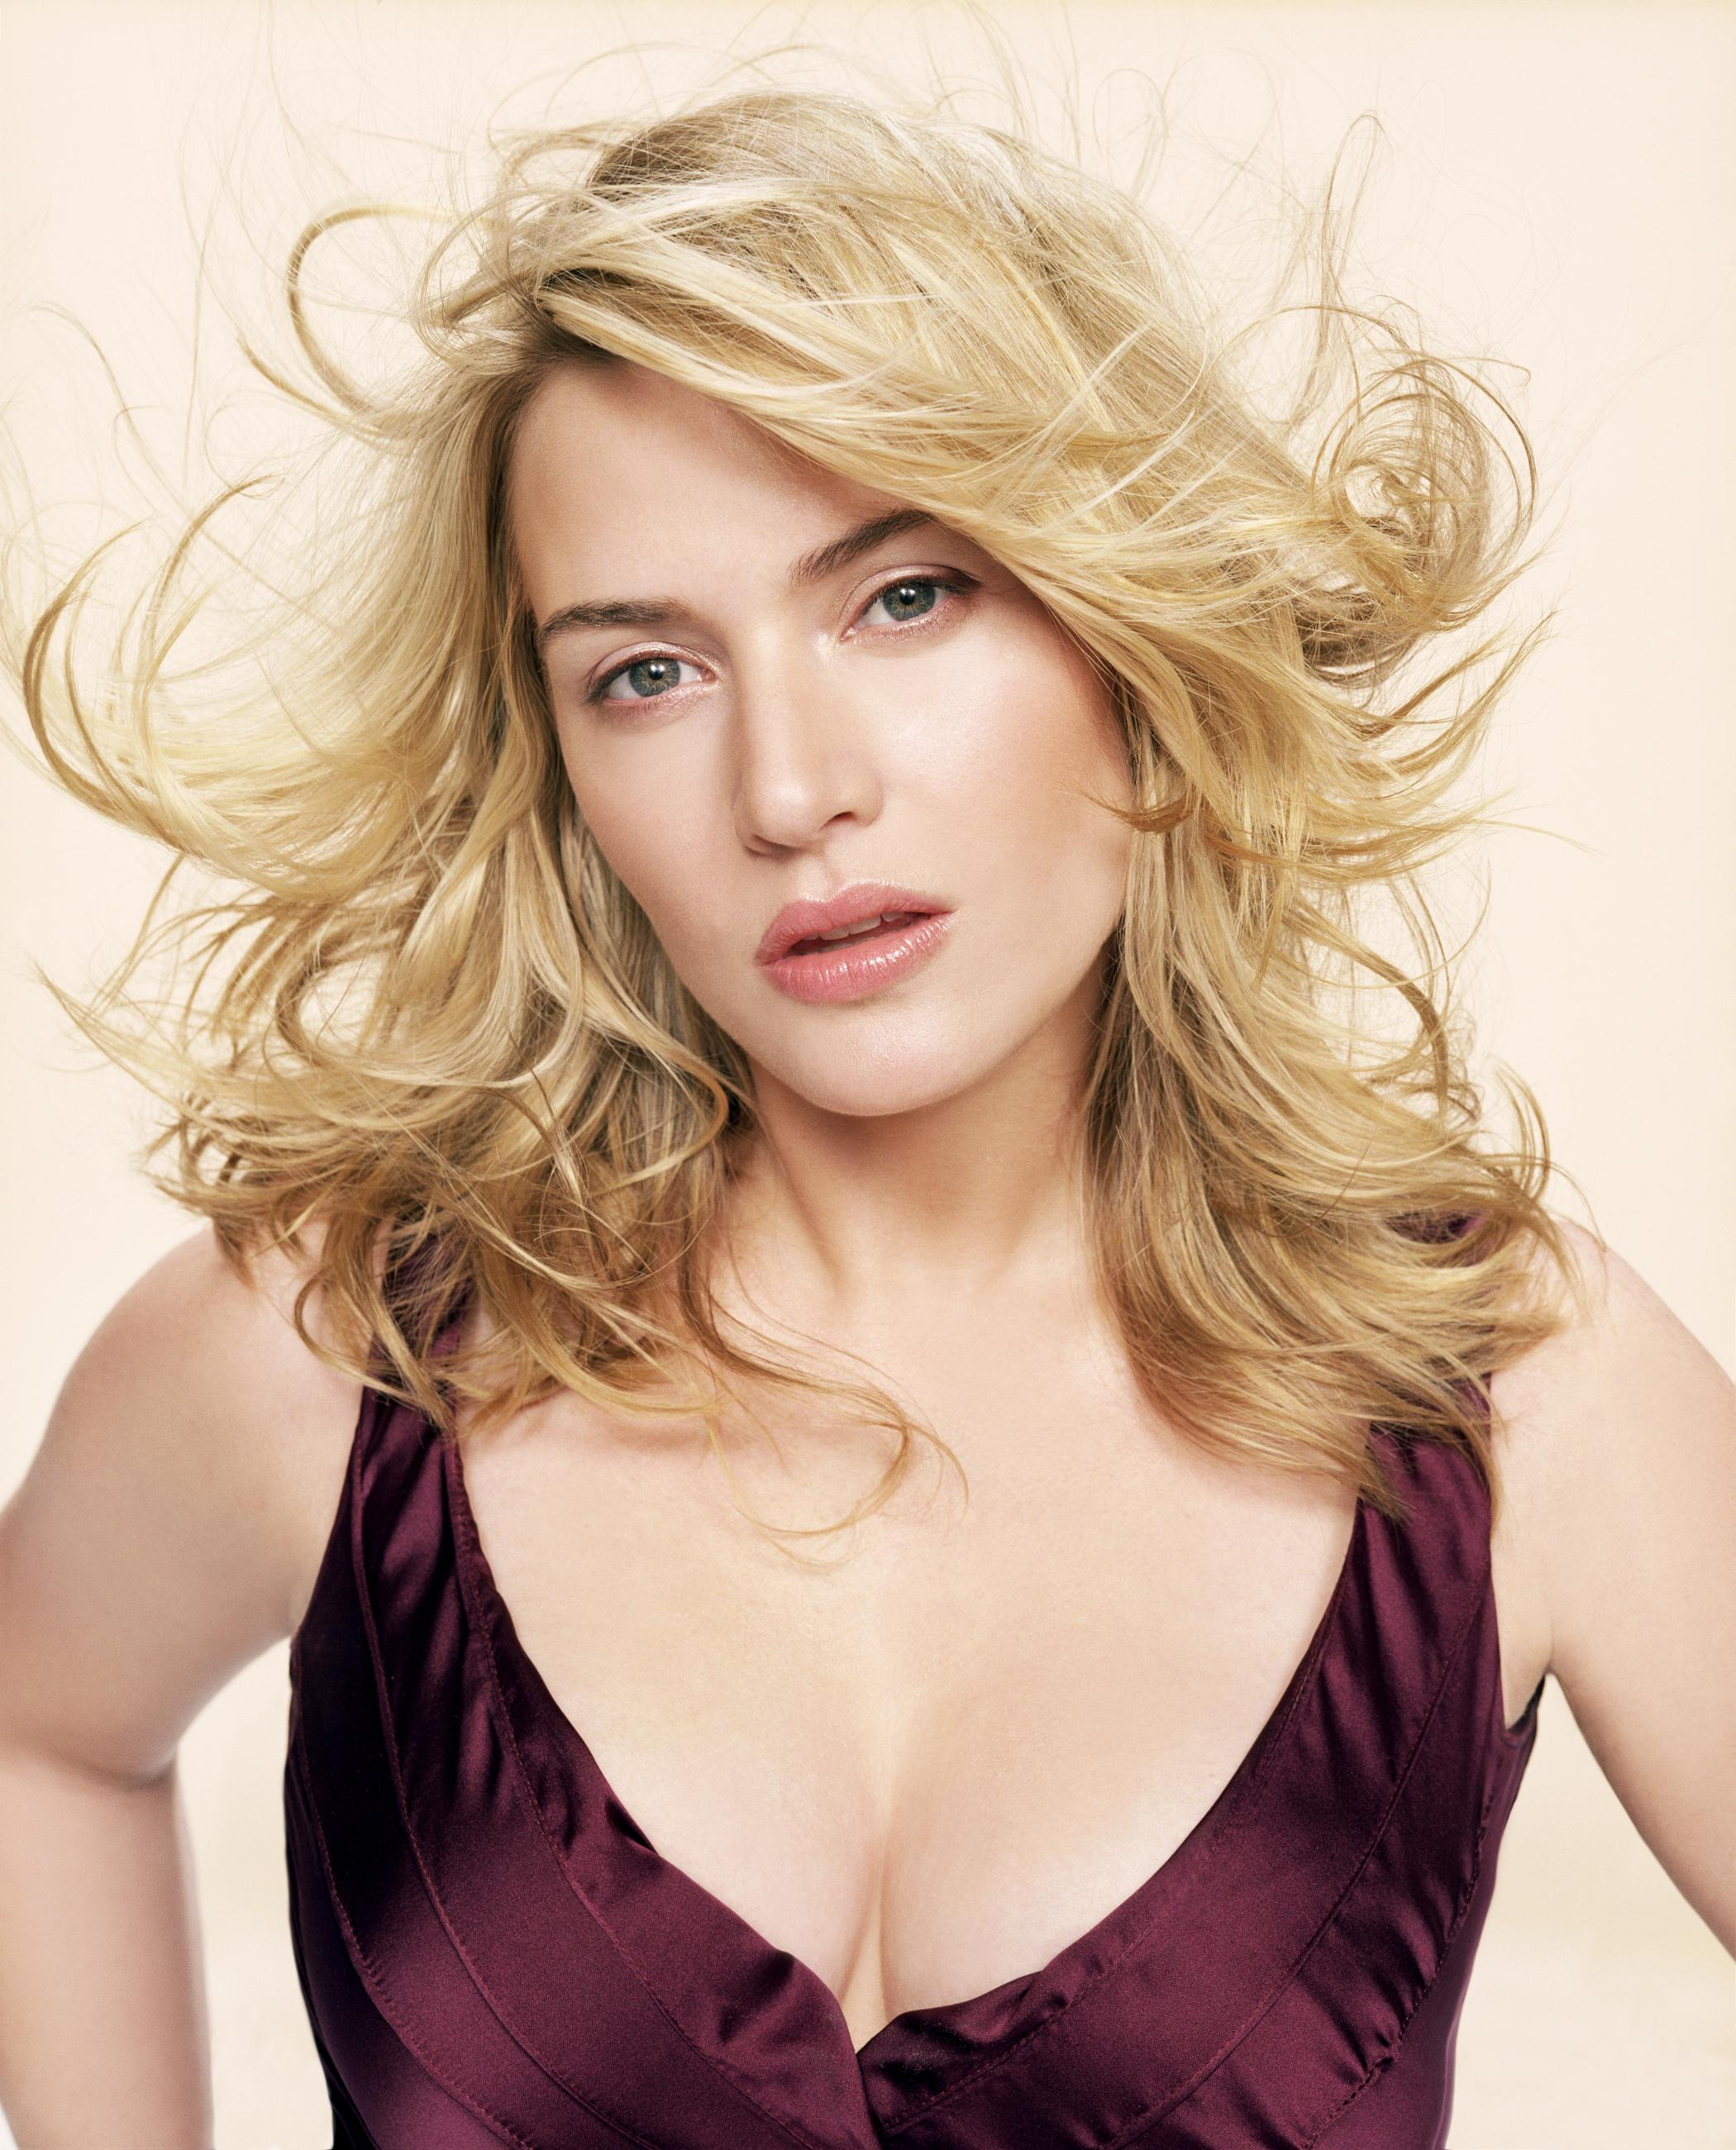 Kate Winslet High Resolution 945.82 Kb